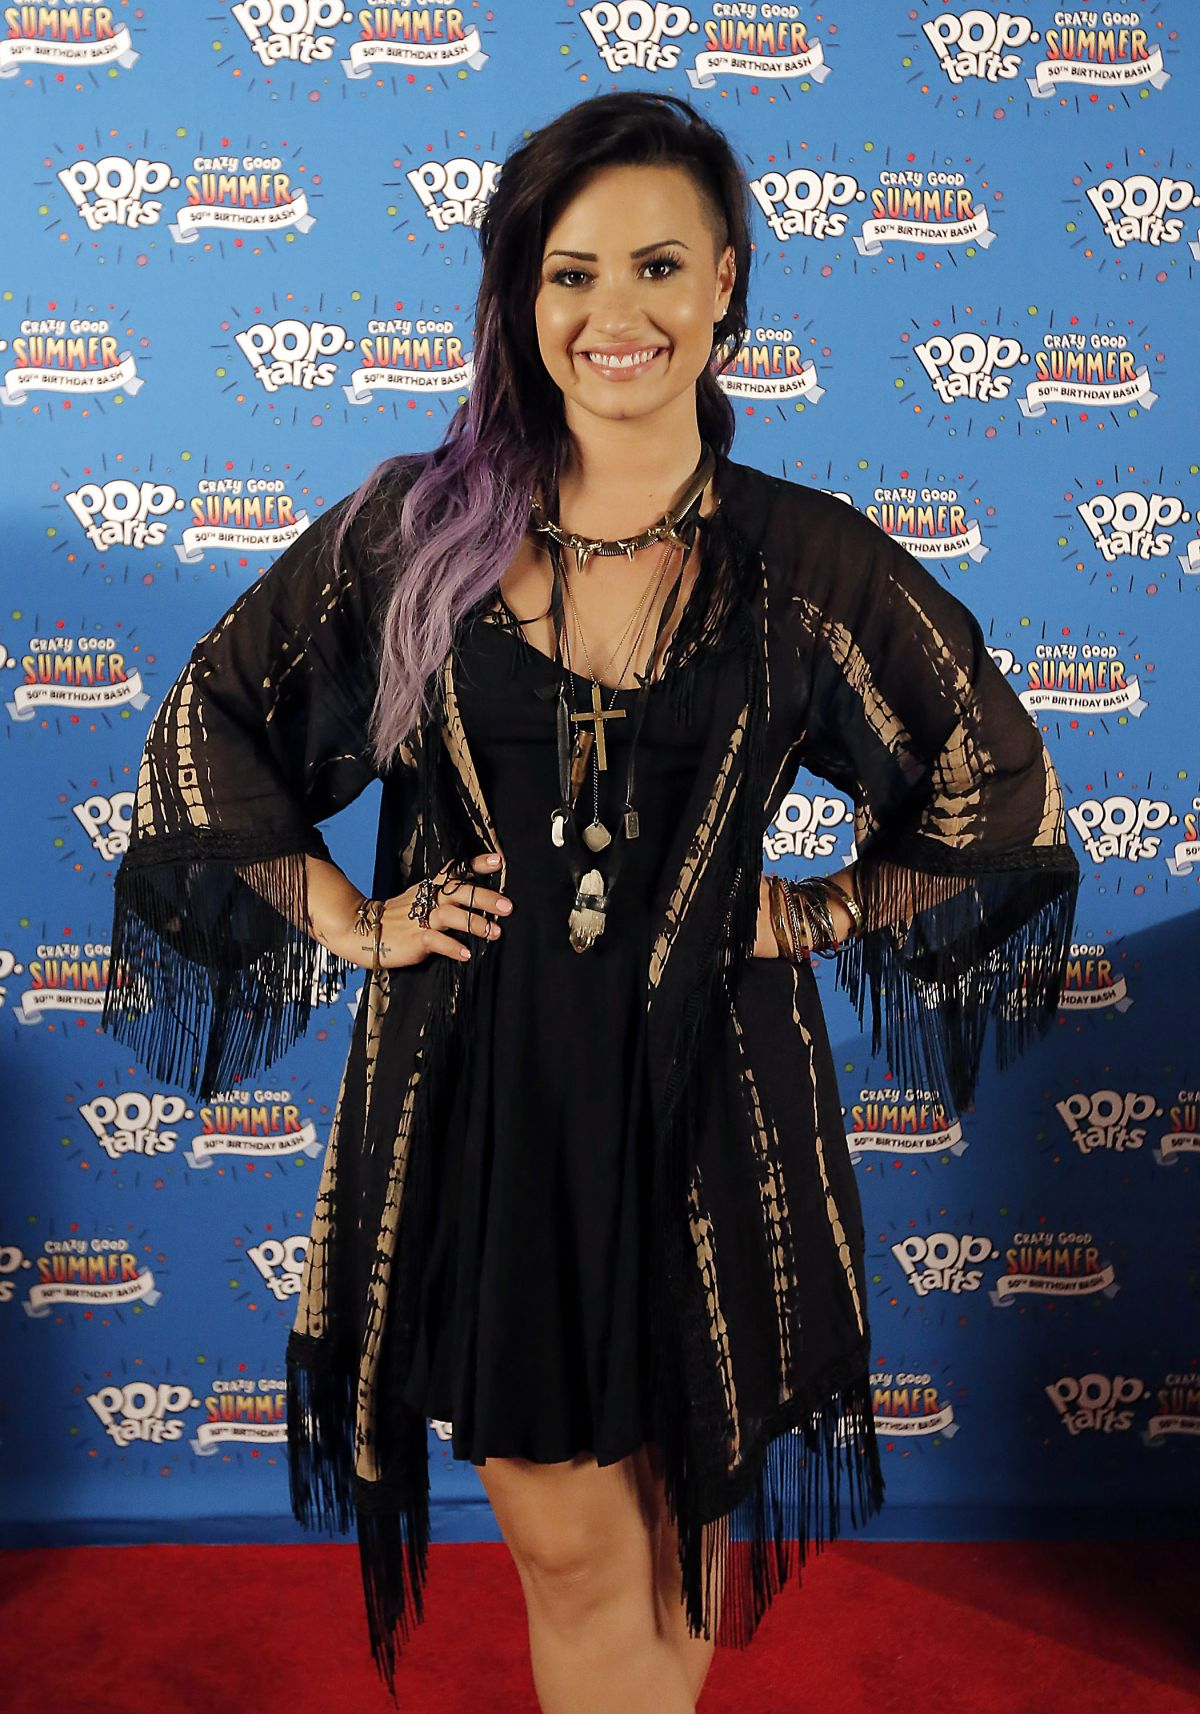 DEMI LOVATO at Pop-tarts #crazygoodsummer Concert Series